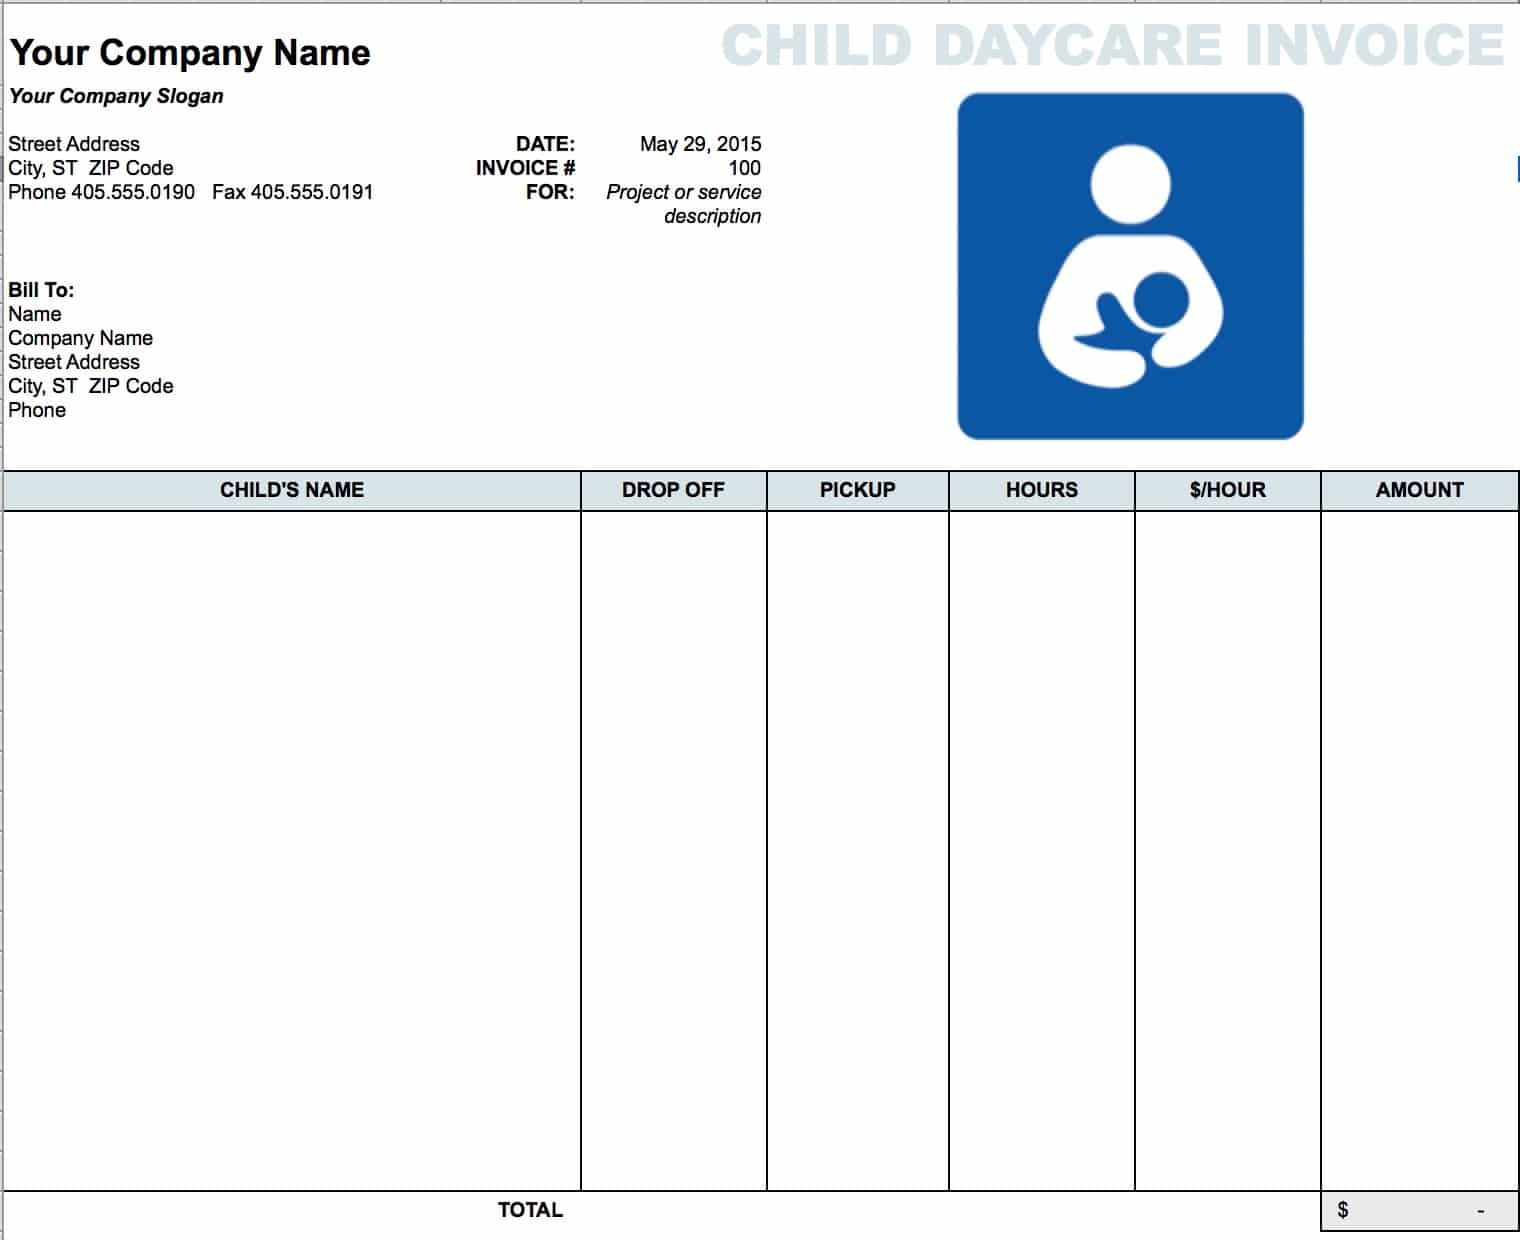 Free Daycare Child Invoice Template Excel PDF Word Doc - Law firm invoice template word for service business